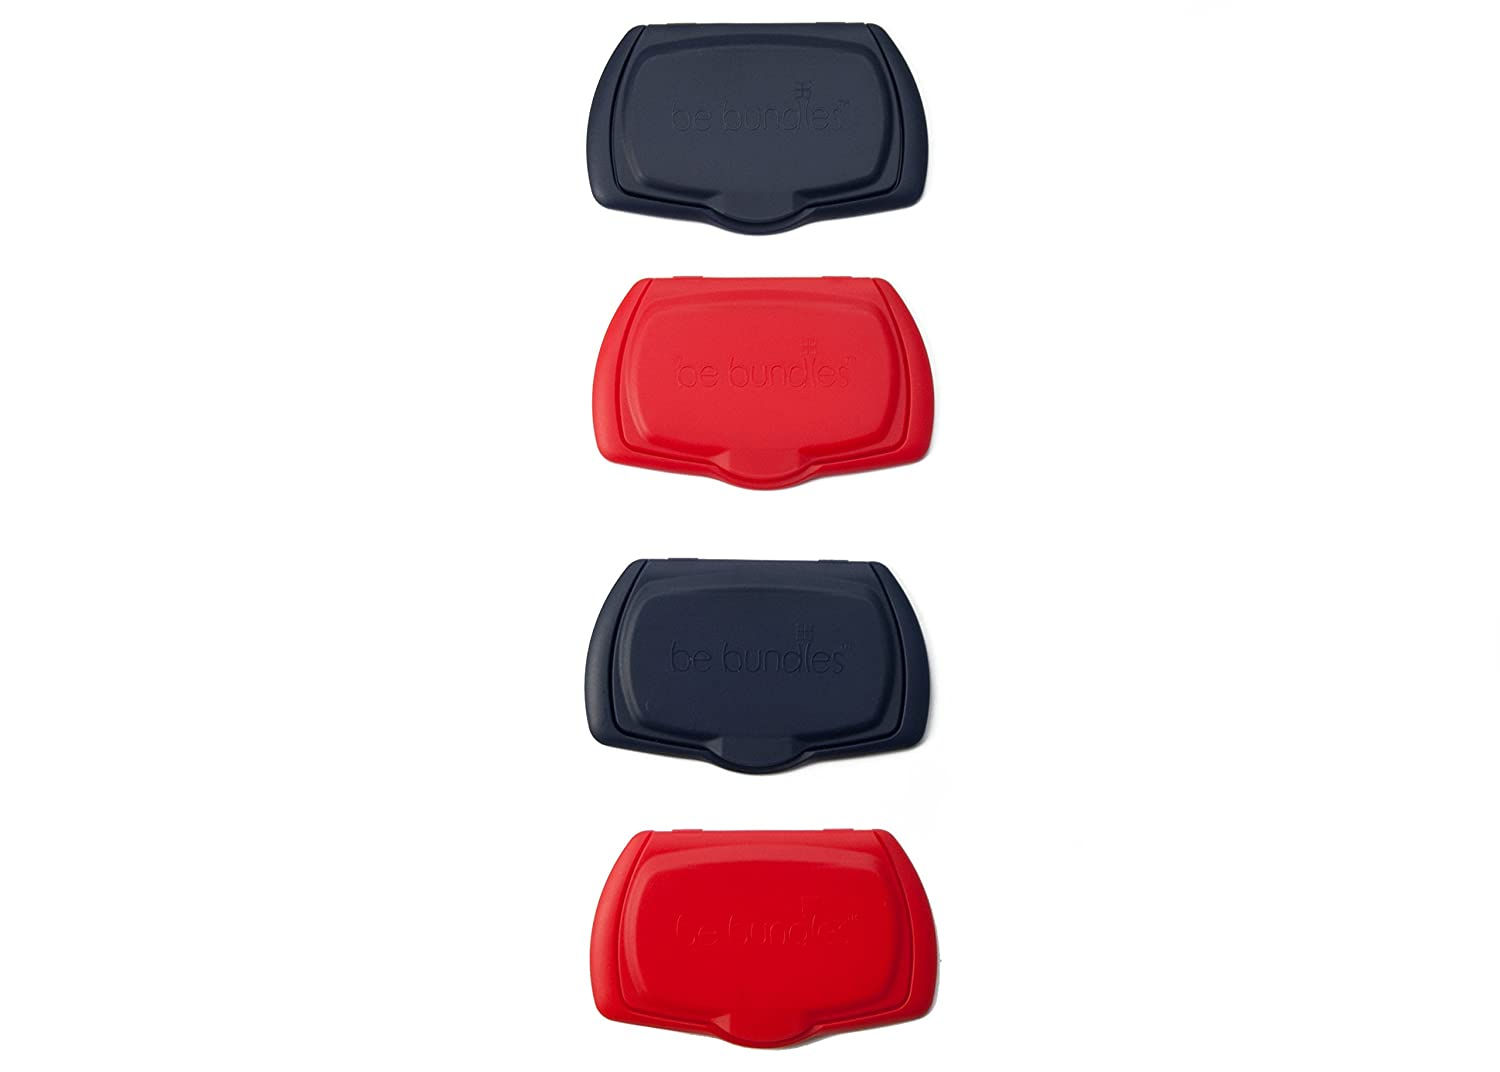 Be Bundles Snap Flip Lid, 4-Pack, Navy (2) / Red (2) - Add or Replace Your Wet Wipes Lid